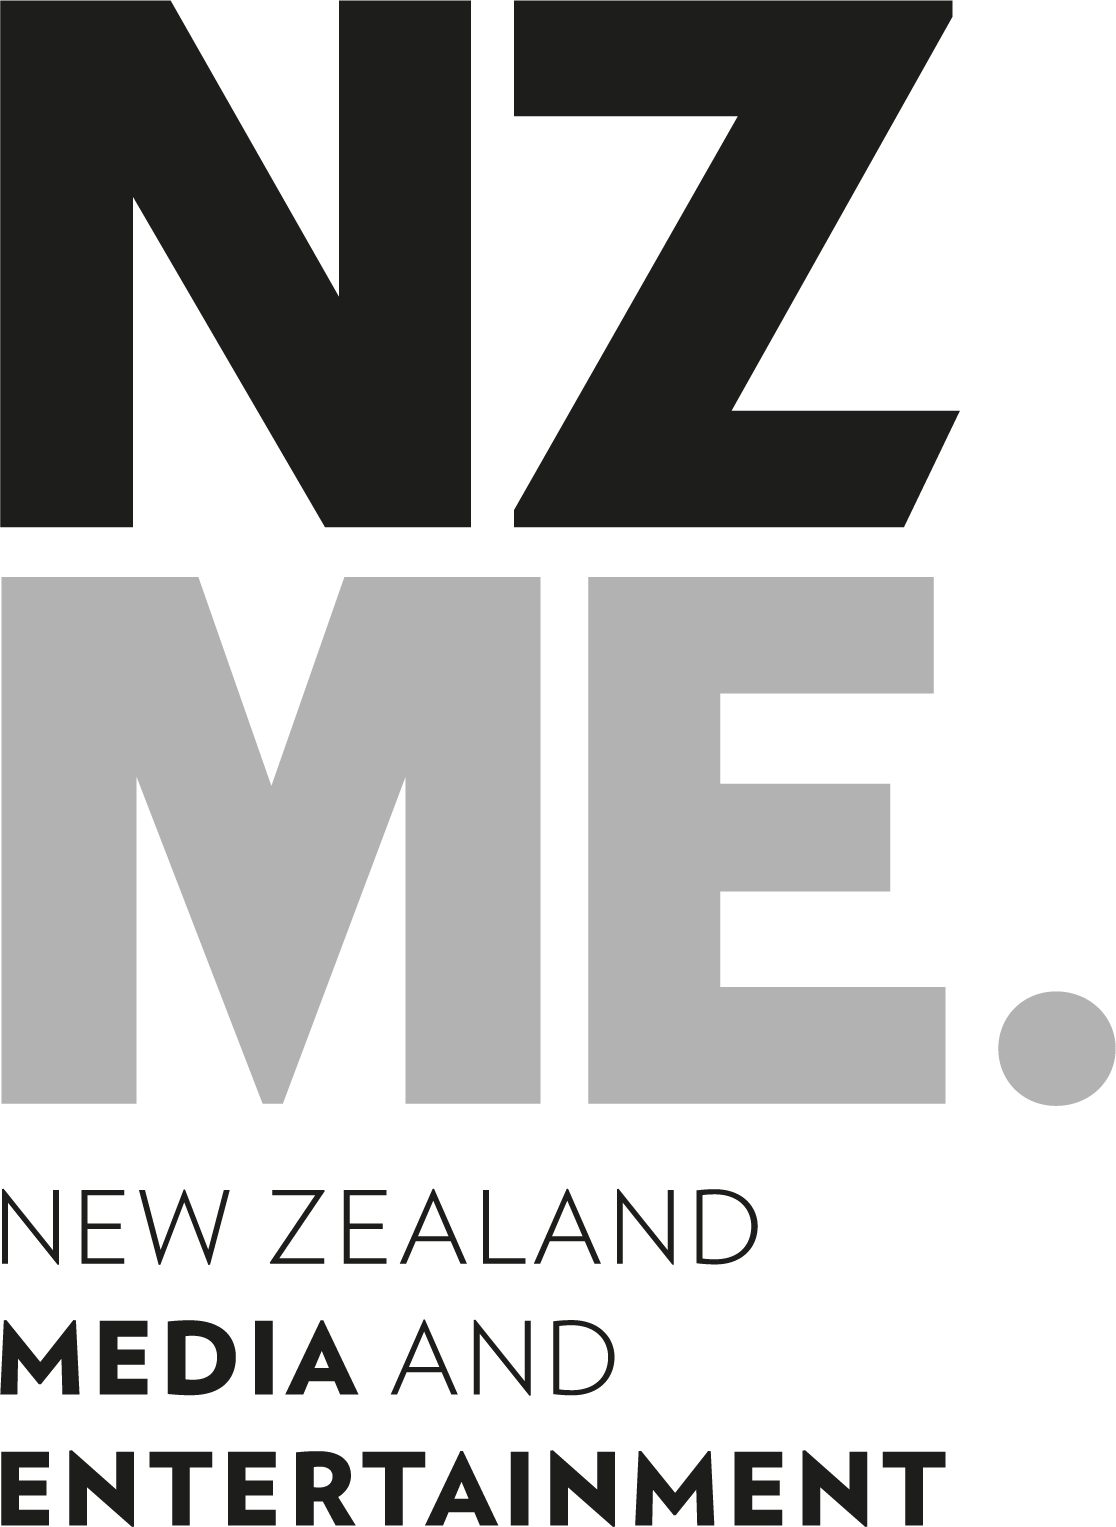 New Zealand Media and Entertainment